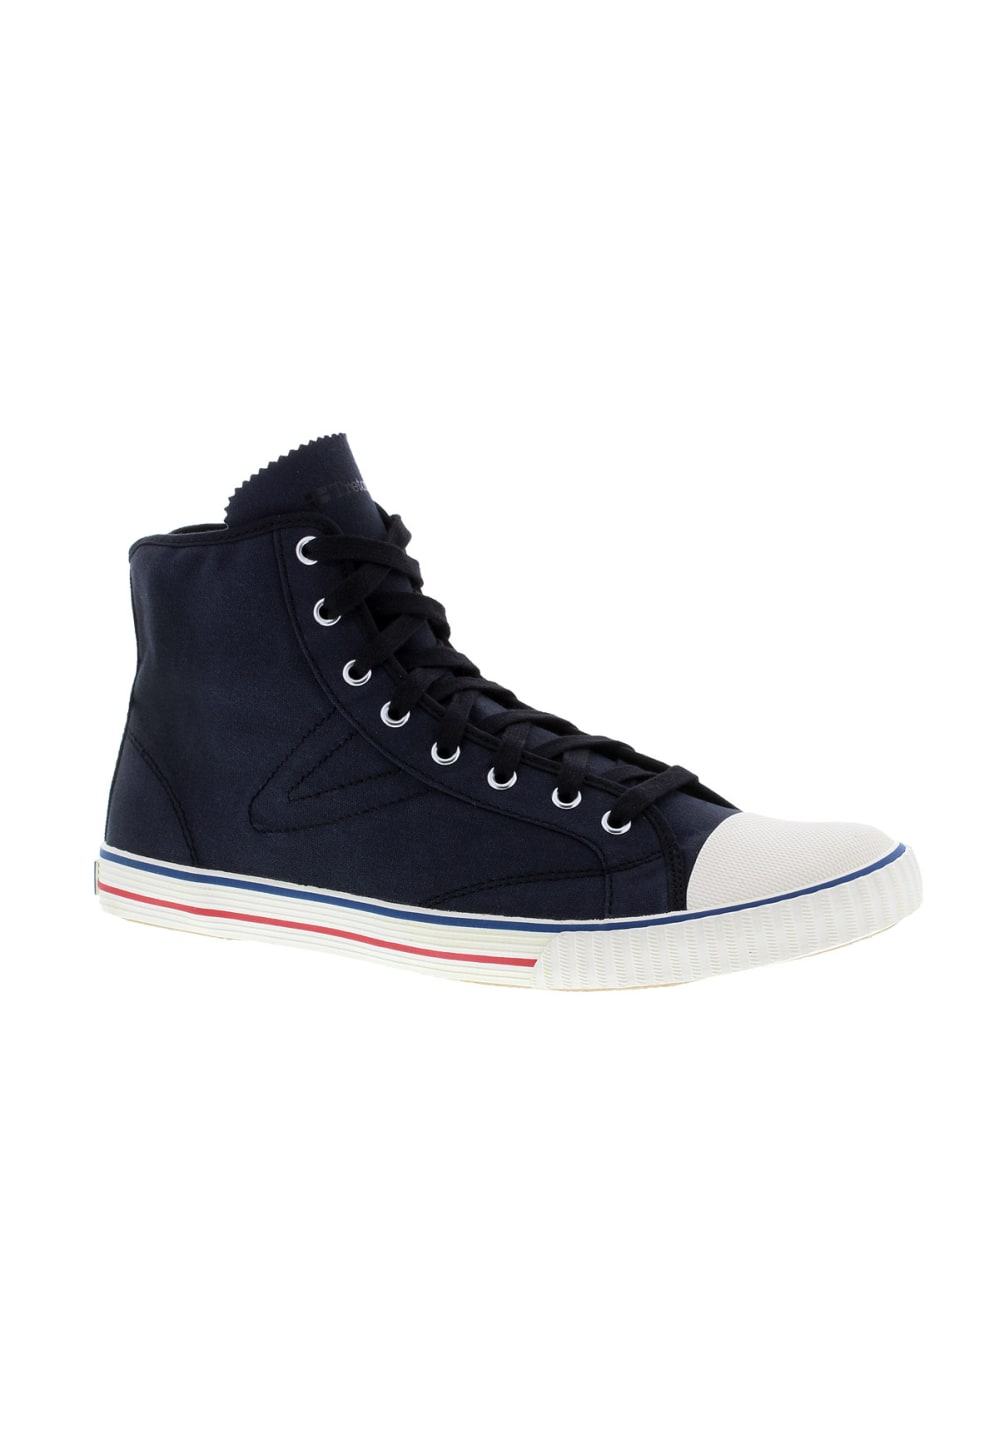 Tretorn Hockeyboot Canvas Sneaker - Blau